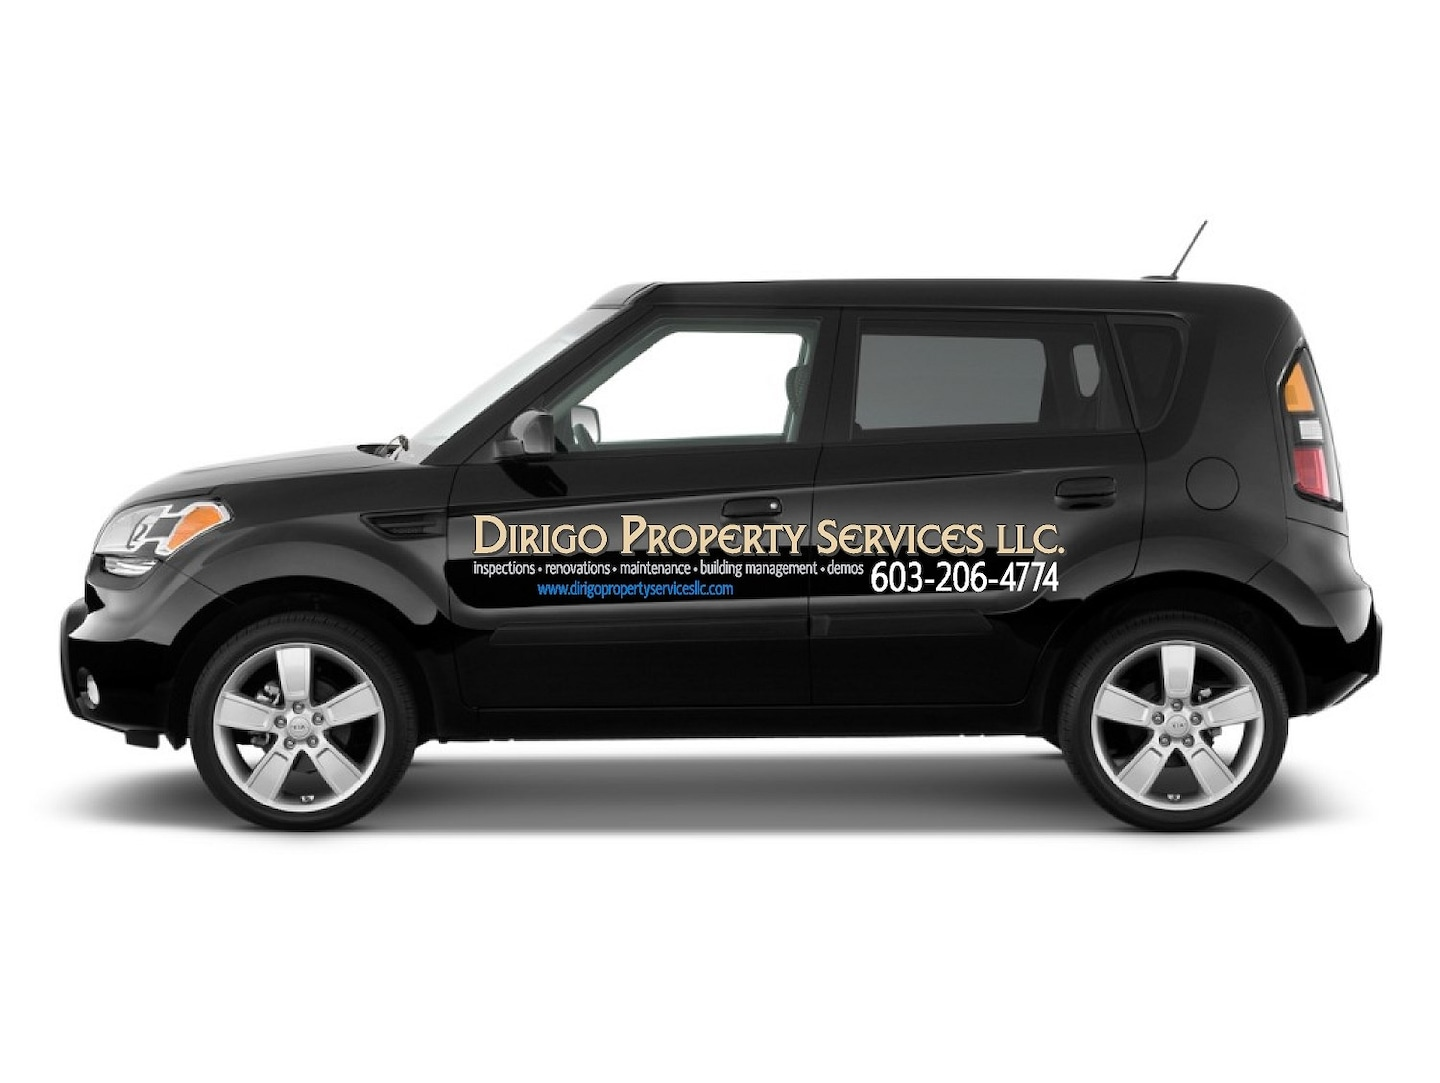 Dirigo Property Services LLC